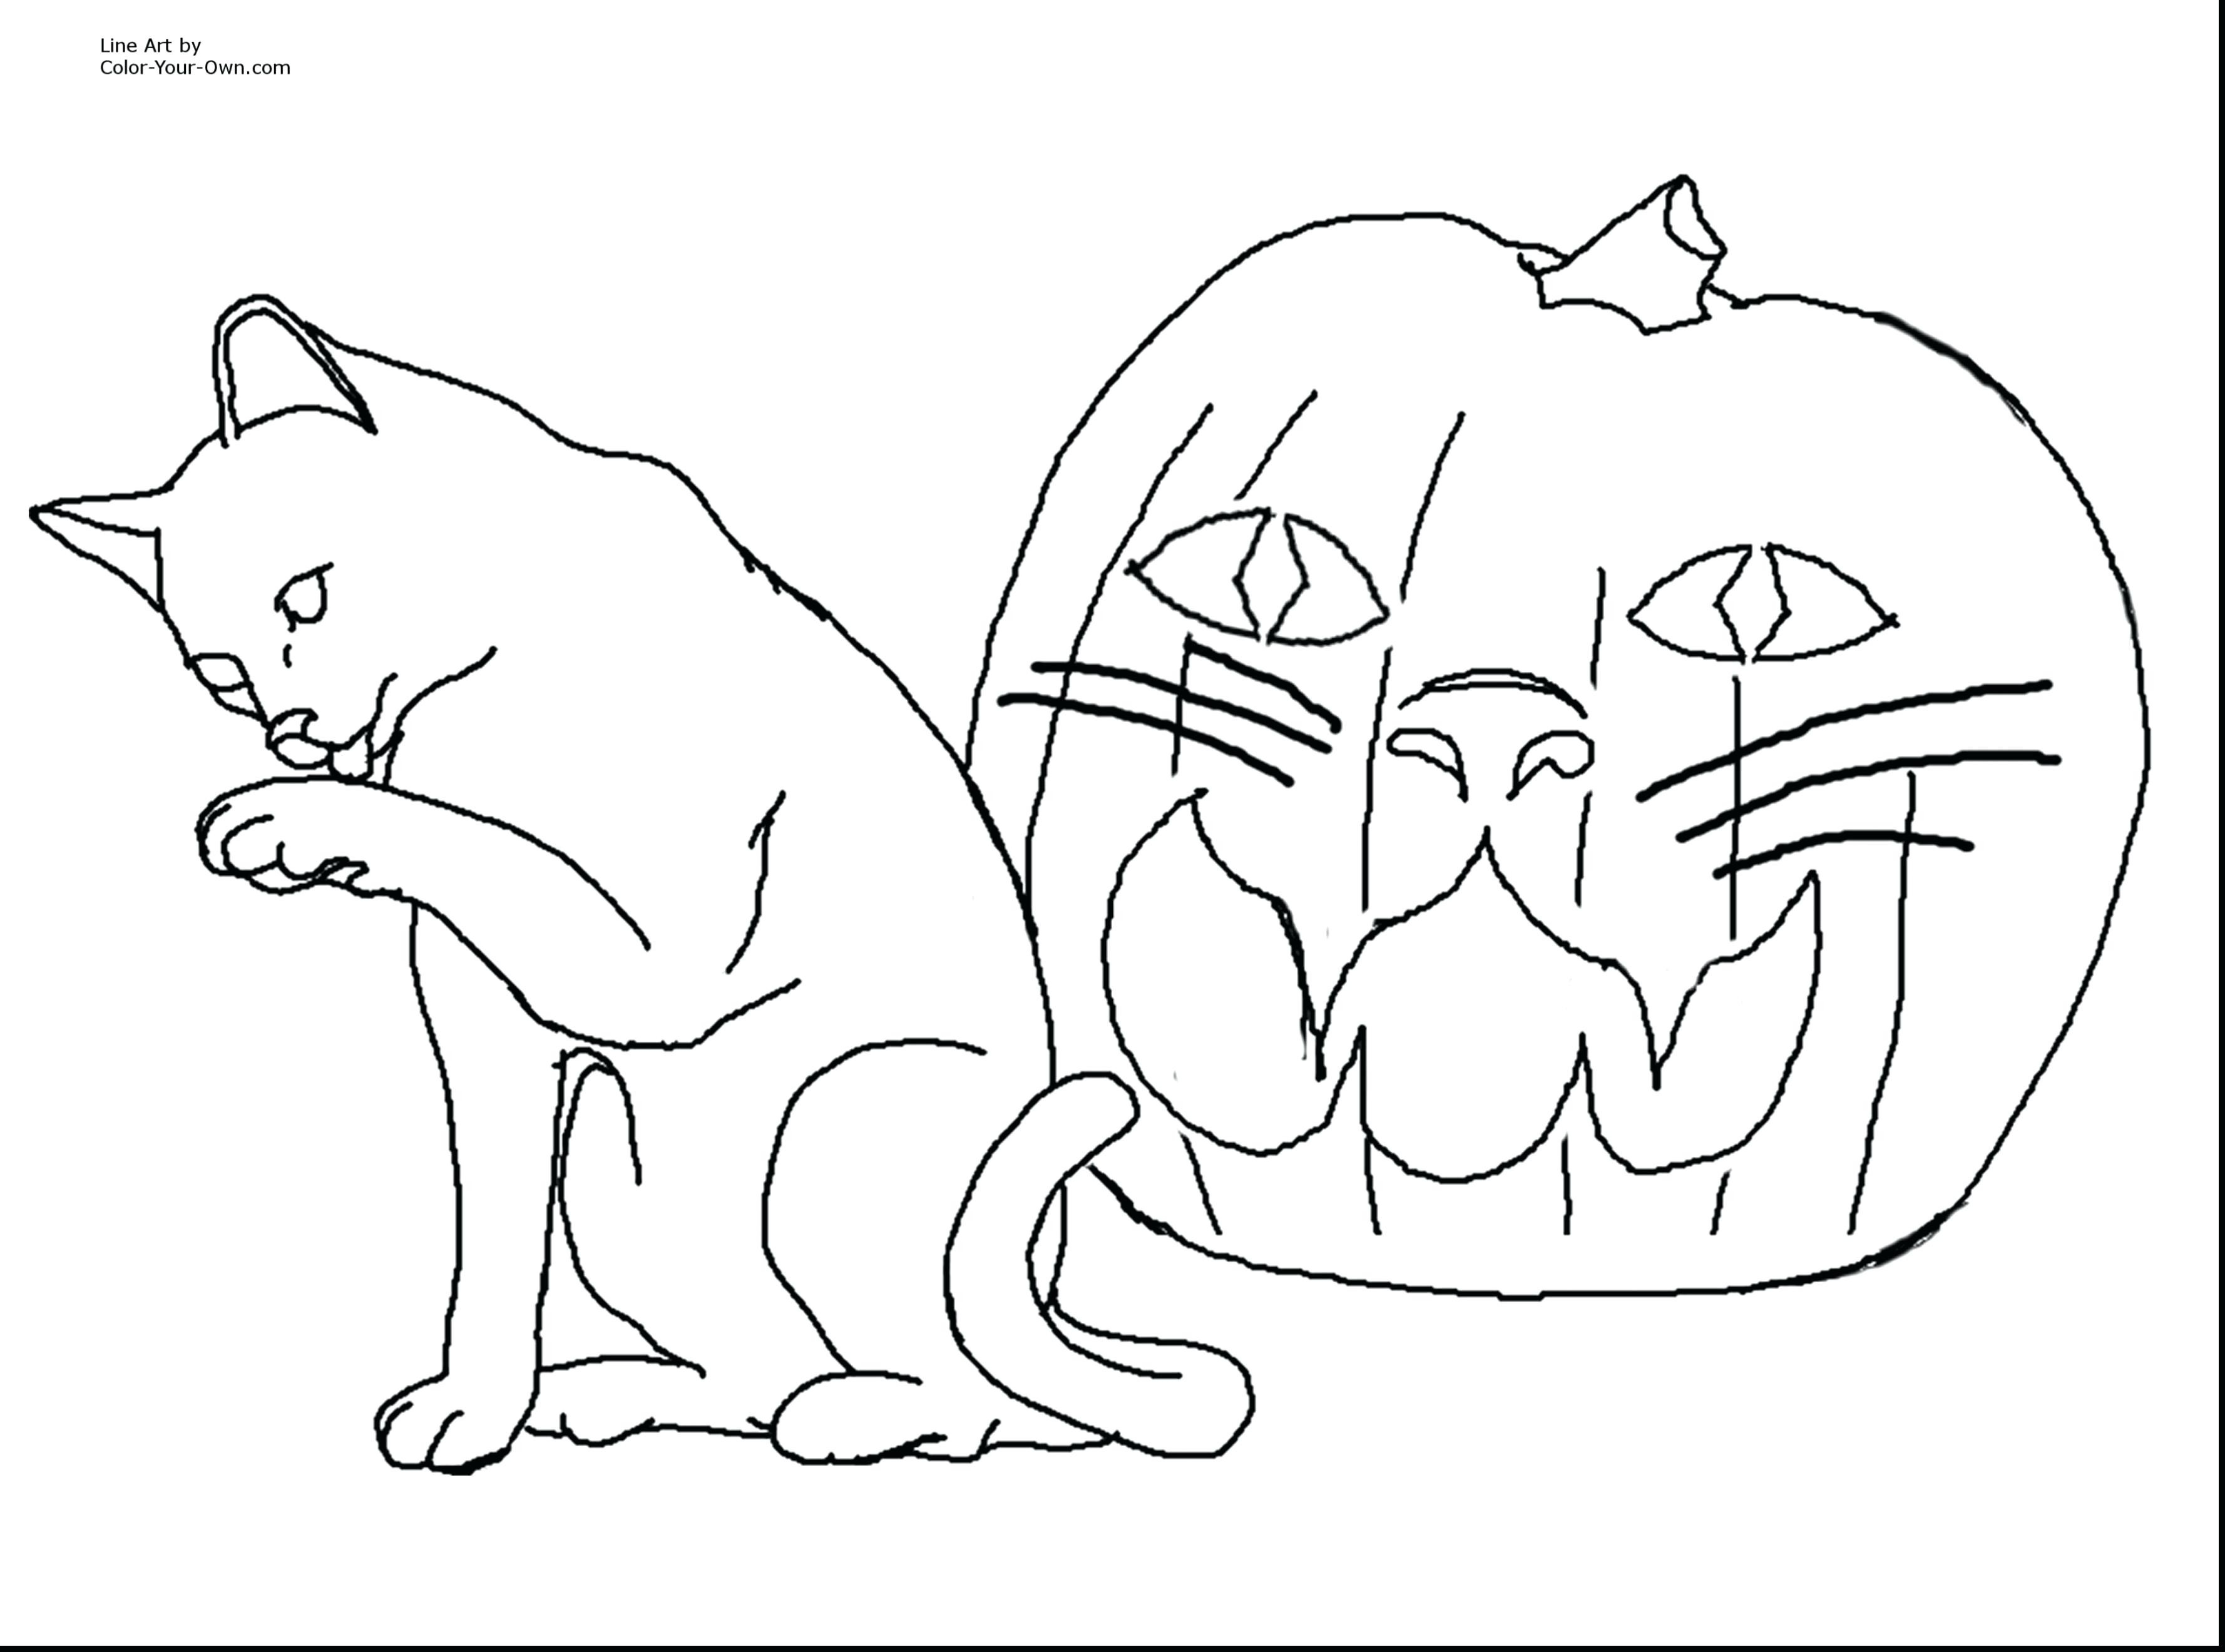 28 Free Animal Coloring Pages for Kids Download - Coloring Sheets